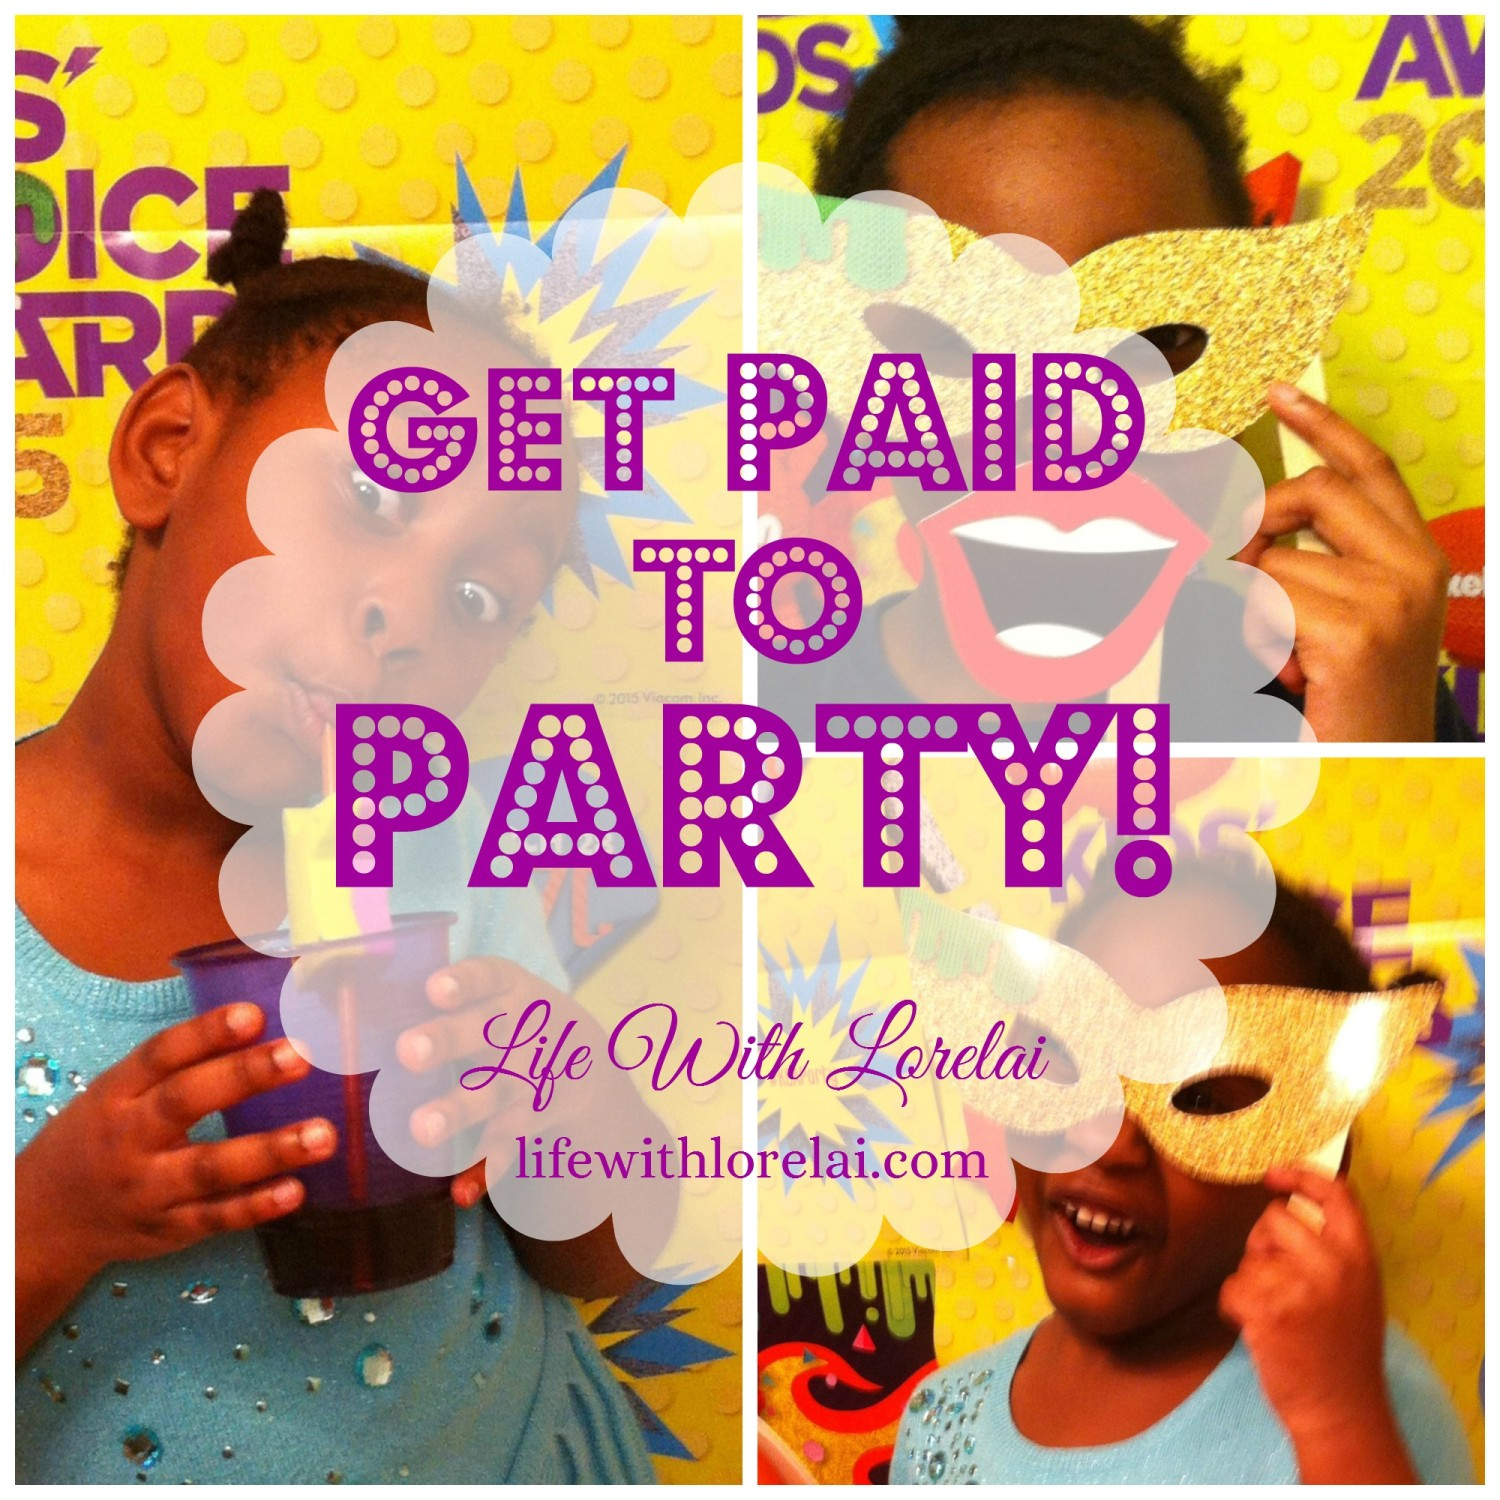 Get Paid To Party - Life With Lorelai